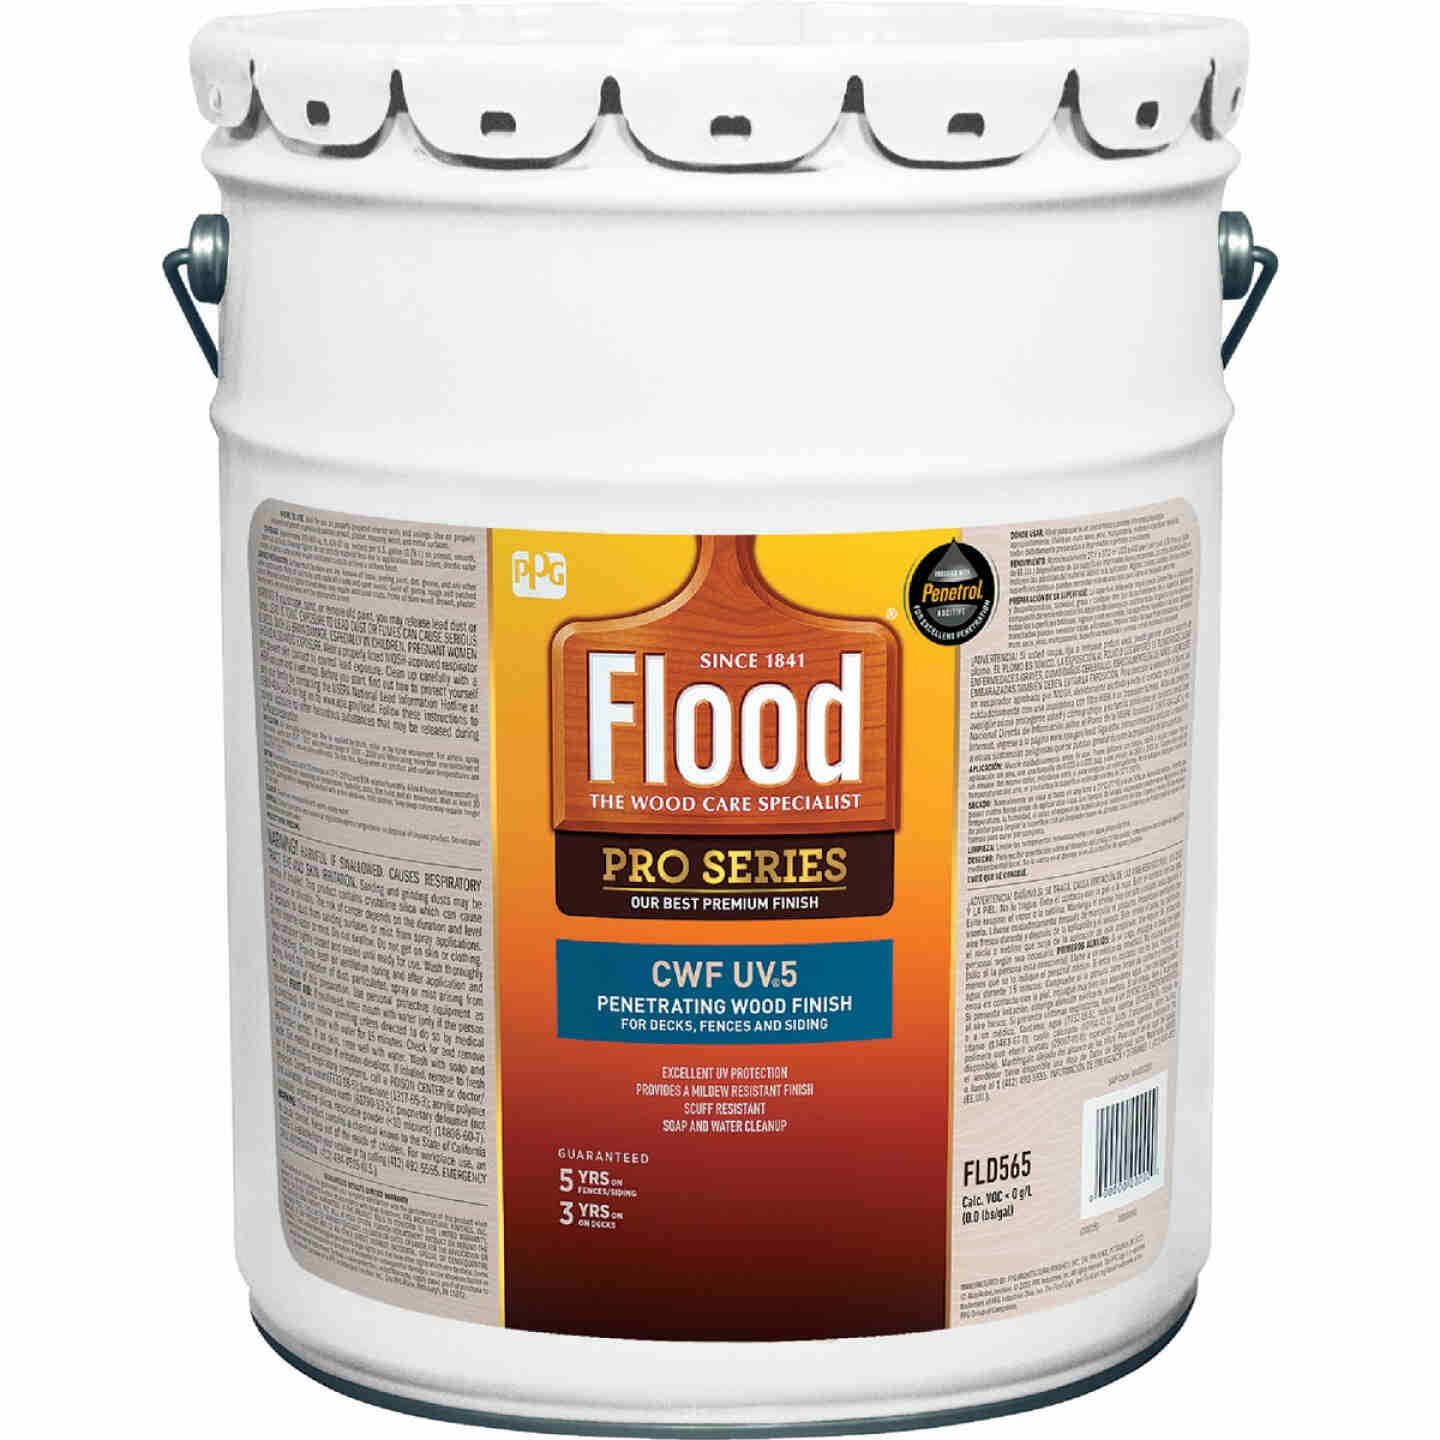 Flood CWF - UV5 Pro Series Wood Finish Exterior Stain, Natural, 5 Gal. Image 1